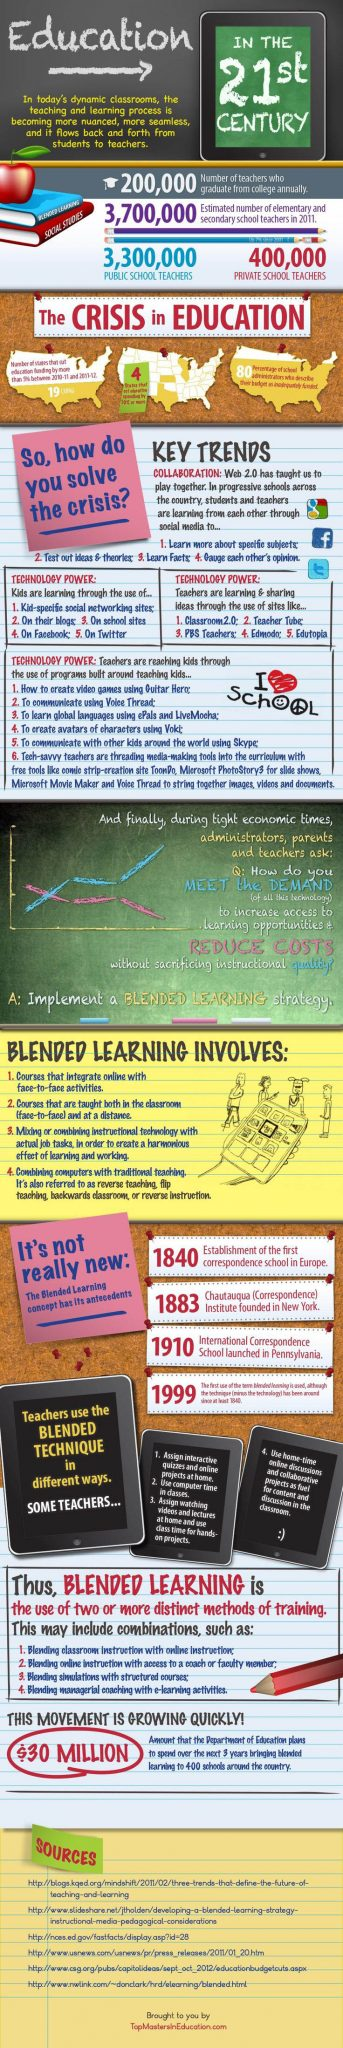 trends-in-blended-learning